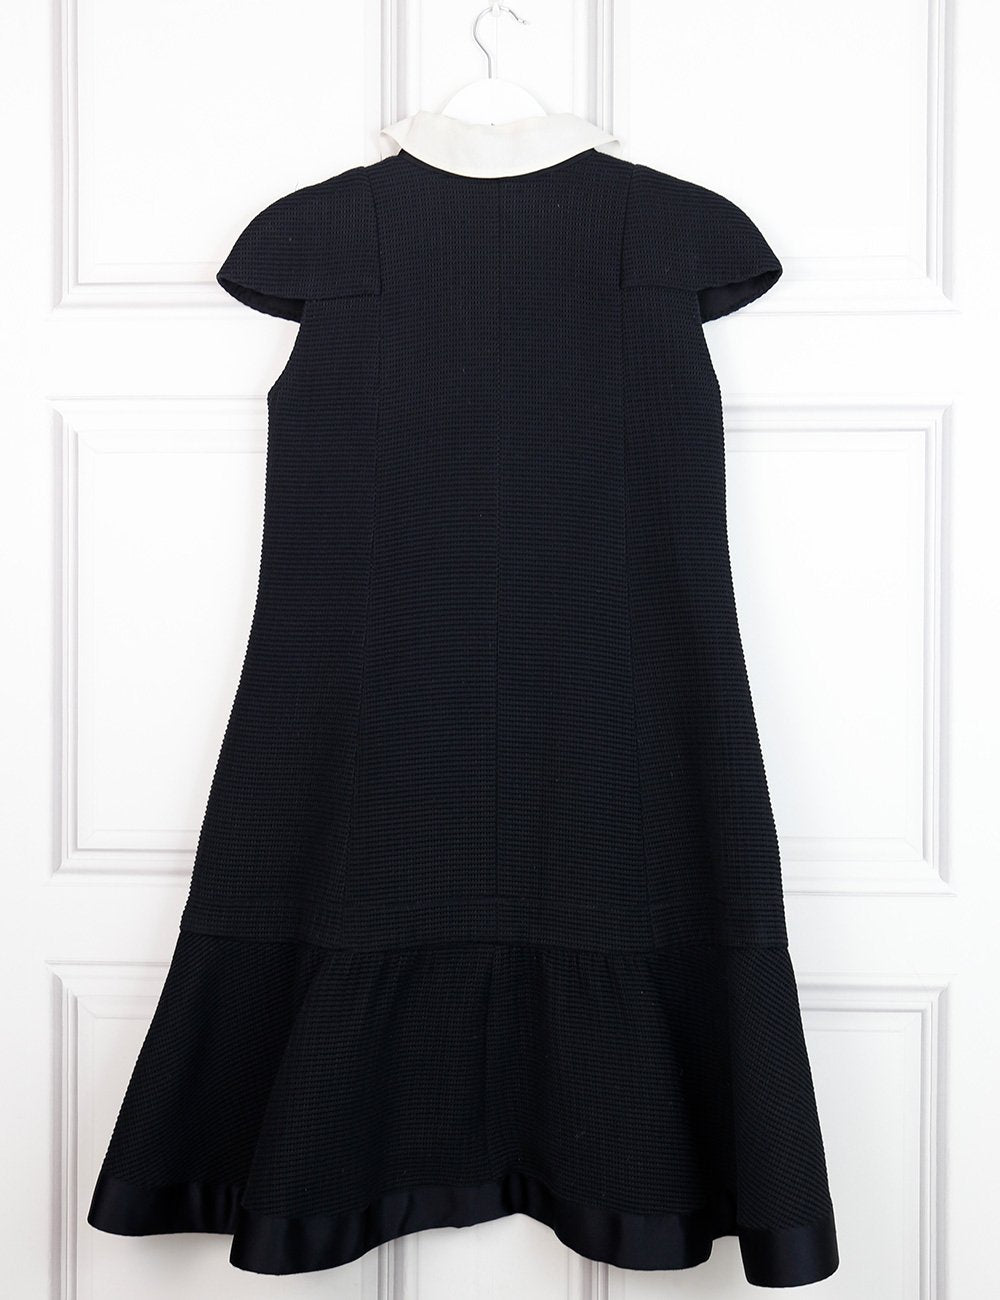 CHANEL Mid-length dress with contrasted collar and bow 14Uk- My Wardrobe Mistakes